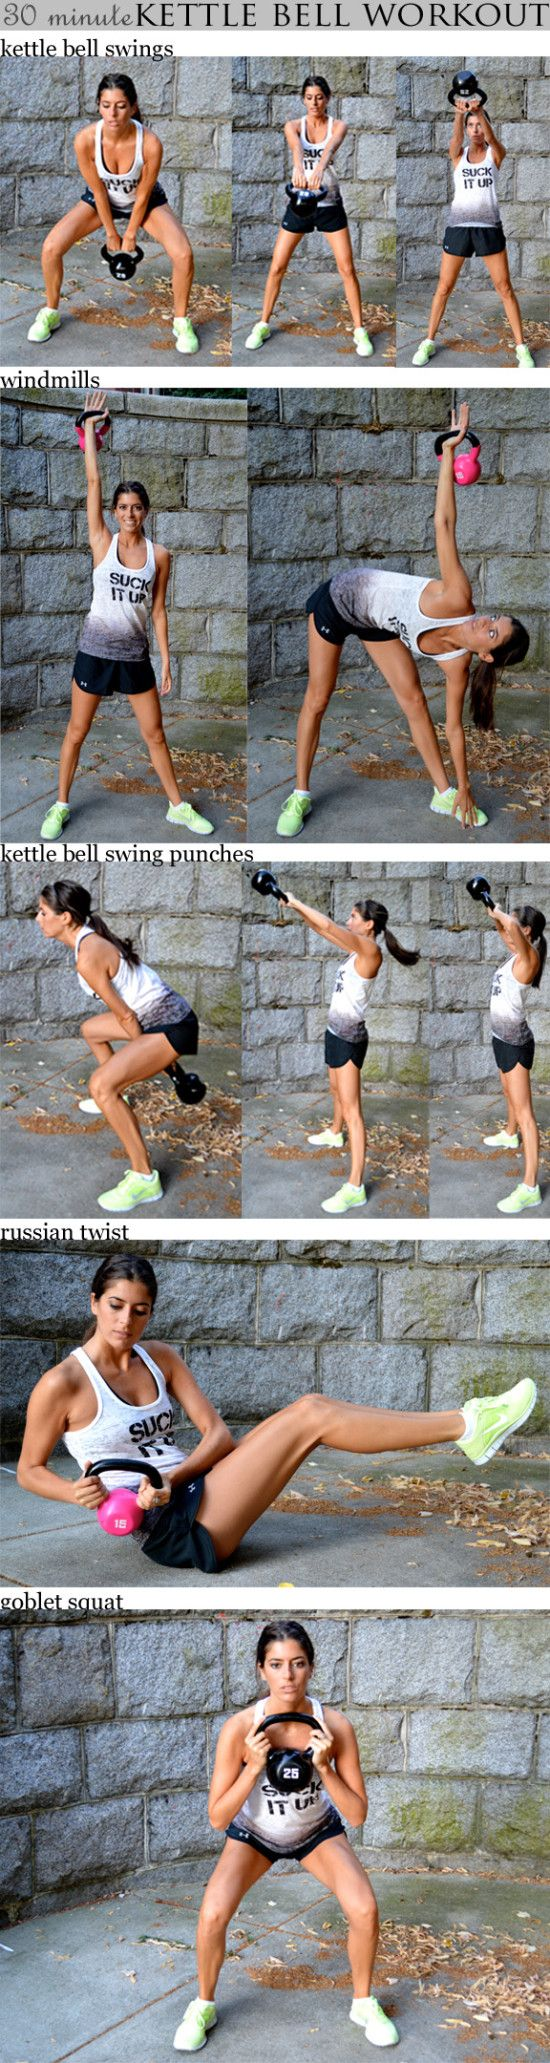 Do this for ten minutes in the am...literally keep your kettle bell just under your bed so you see it. Wakes you up and gets the mind/body going.